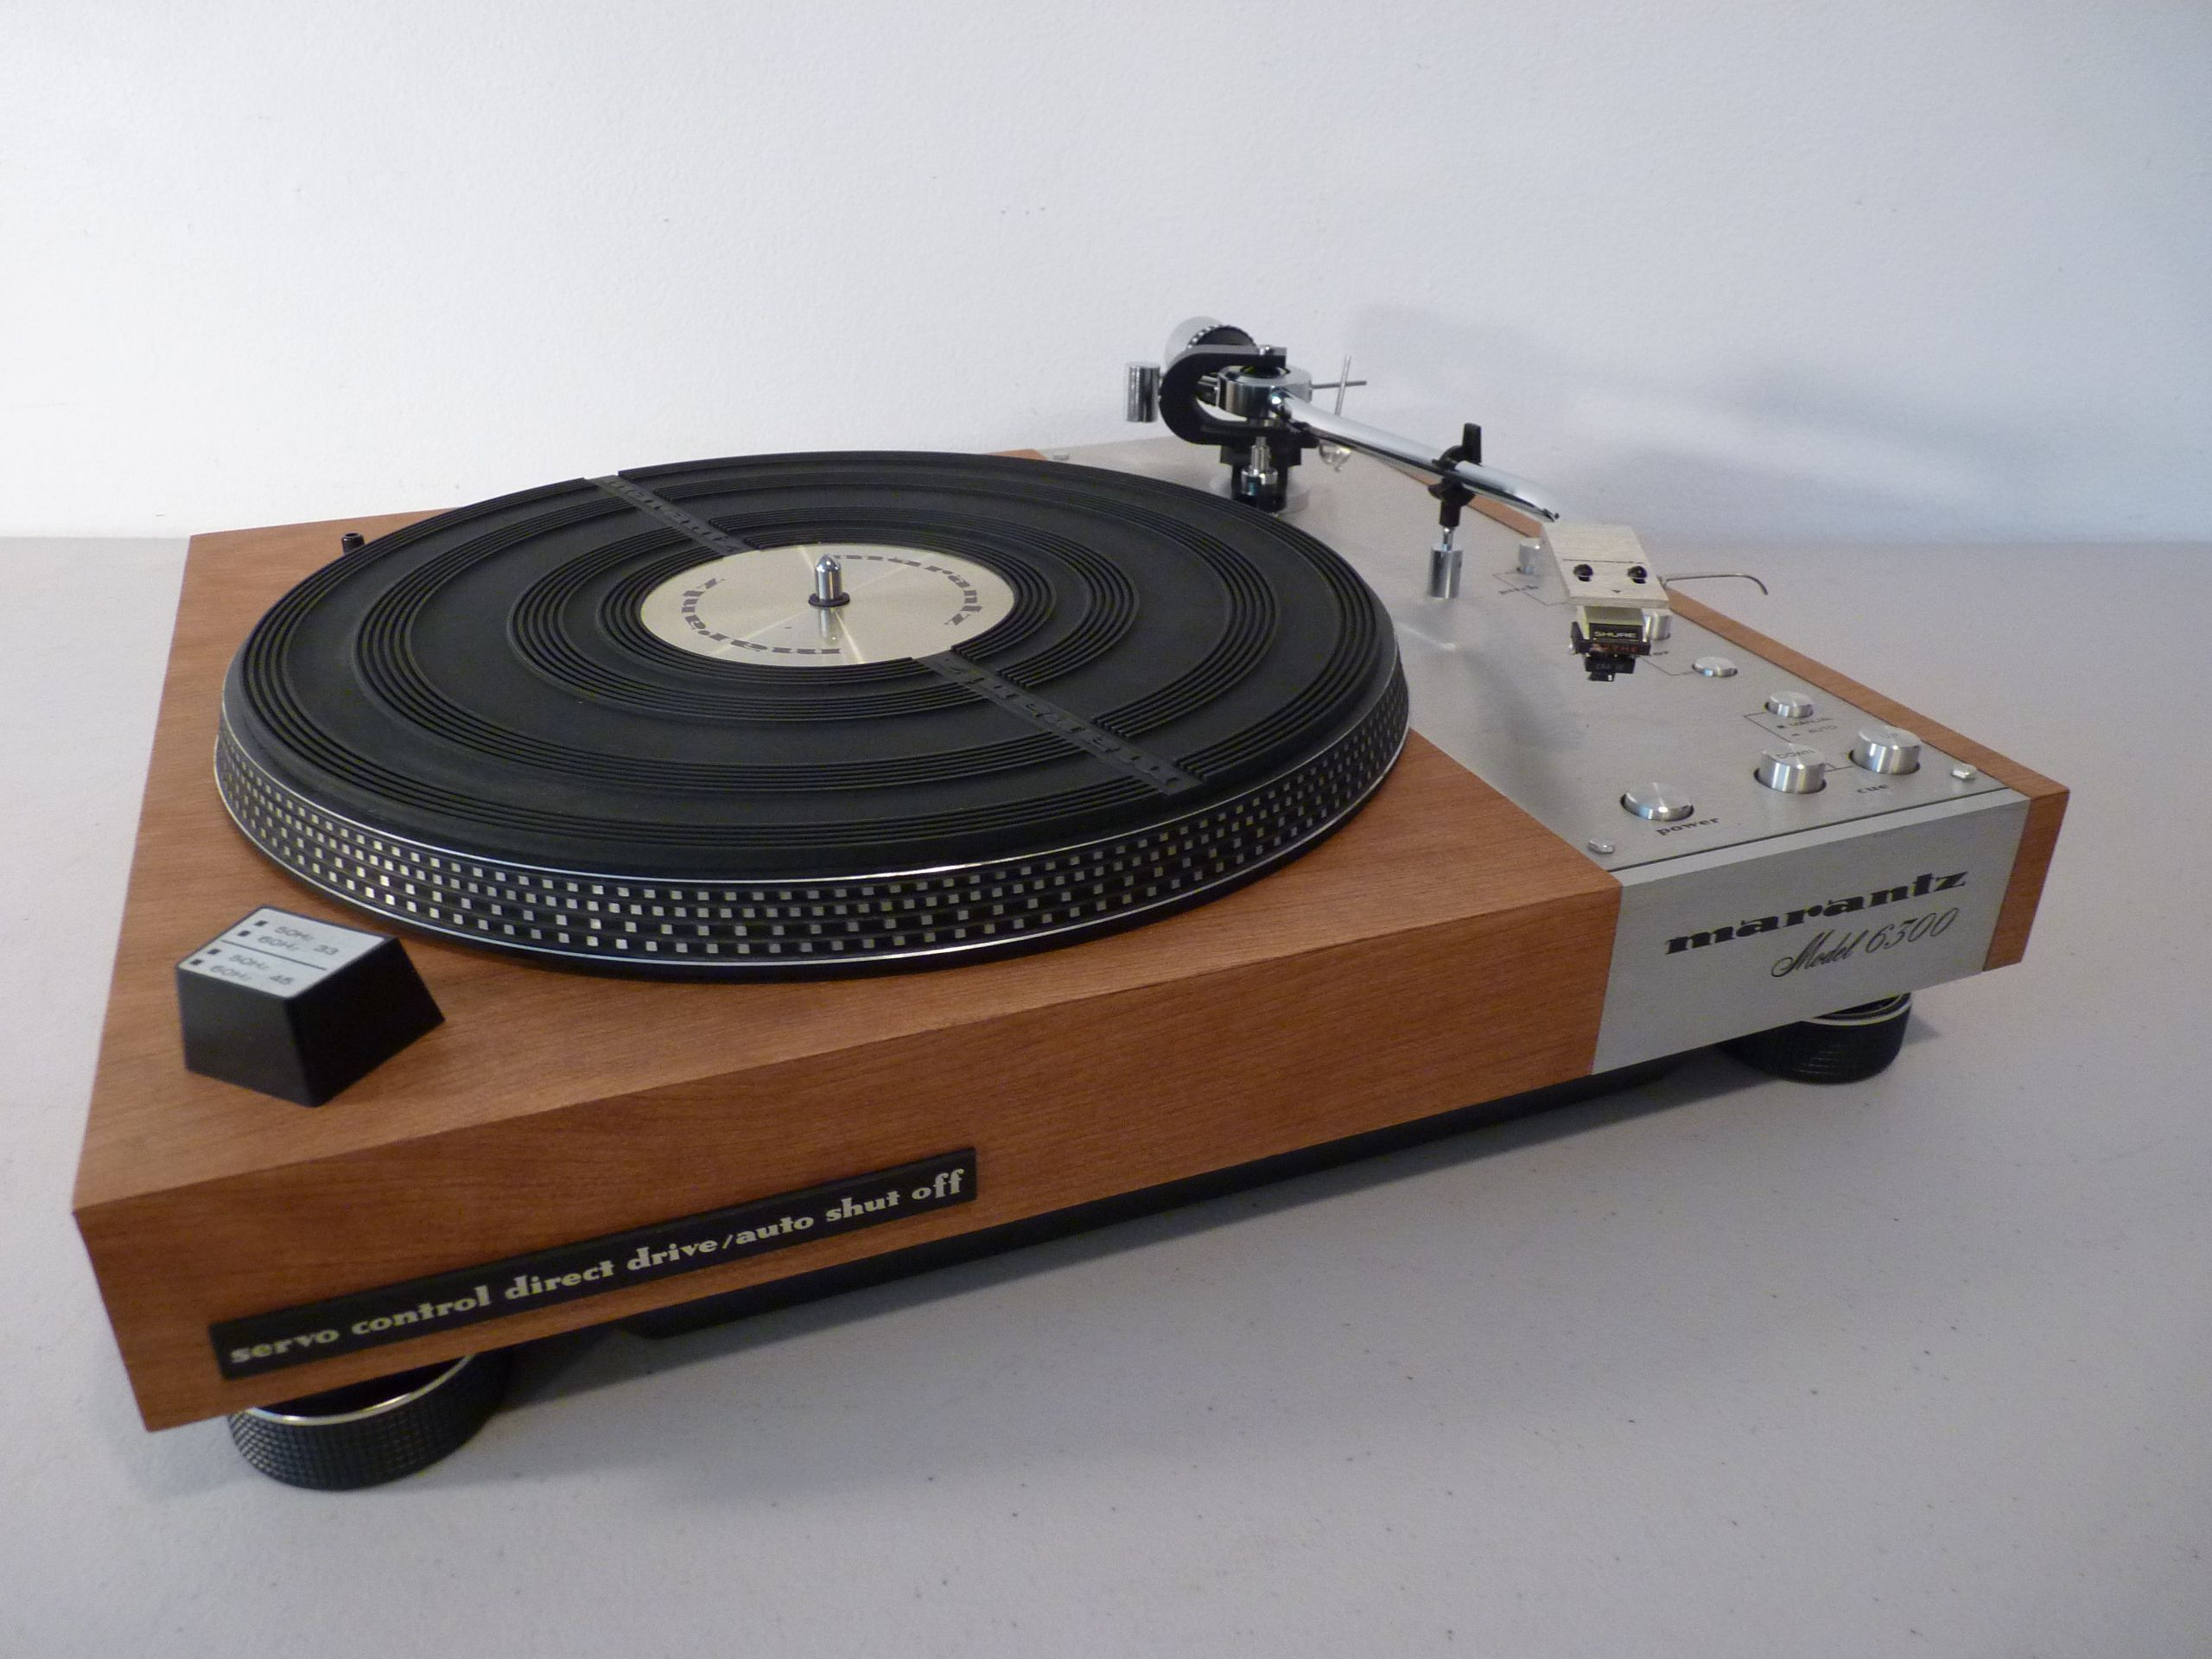 Restored Marantz 6300 turntable